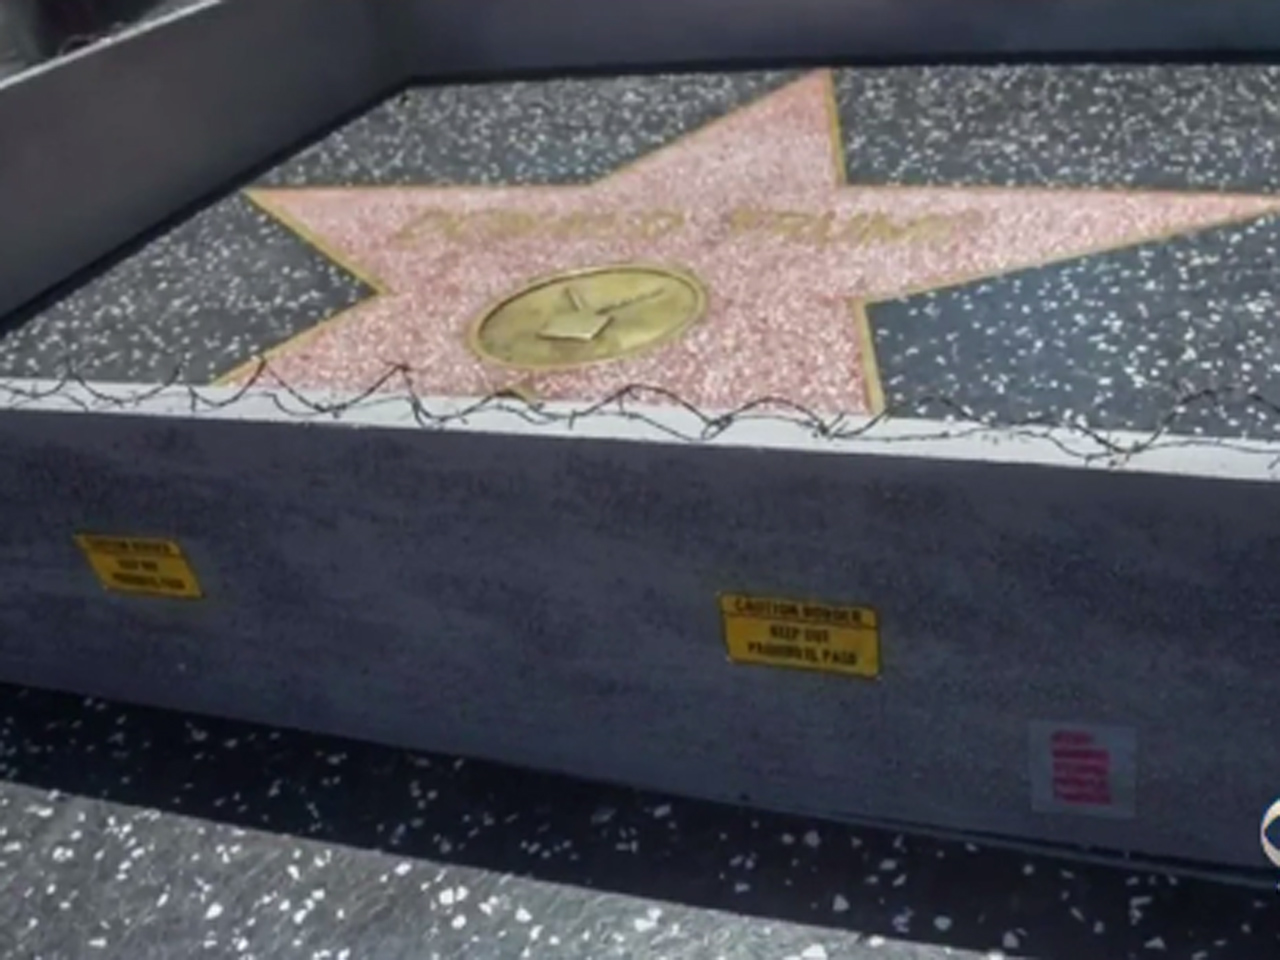 Protester uses Donald Trump Hollywood Walk of Fame star to mock him - CBS News